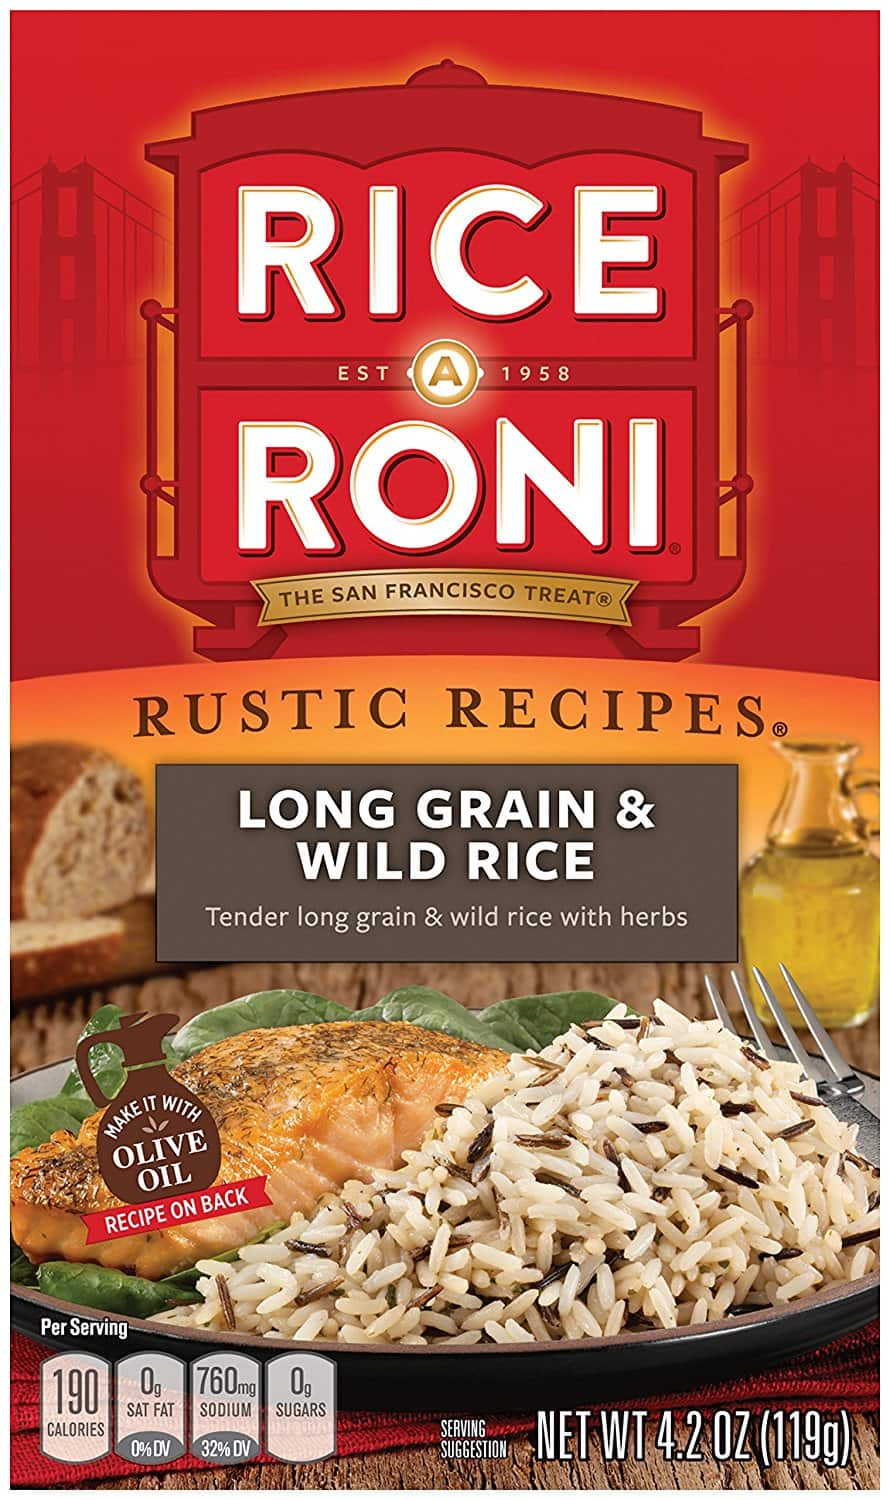 Amazon S&S: Rice a Roni, Rustic Recipies, Long Grain and Wild Rice Mix 4.2oz (Pack of 12 Boxes) - 8.40 $8.4